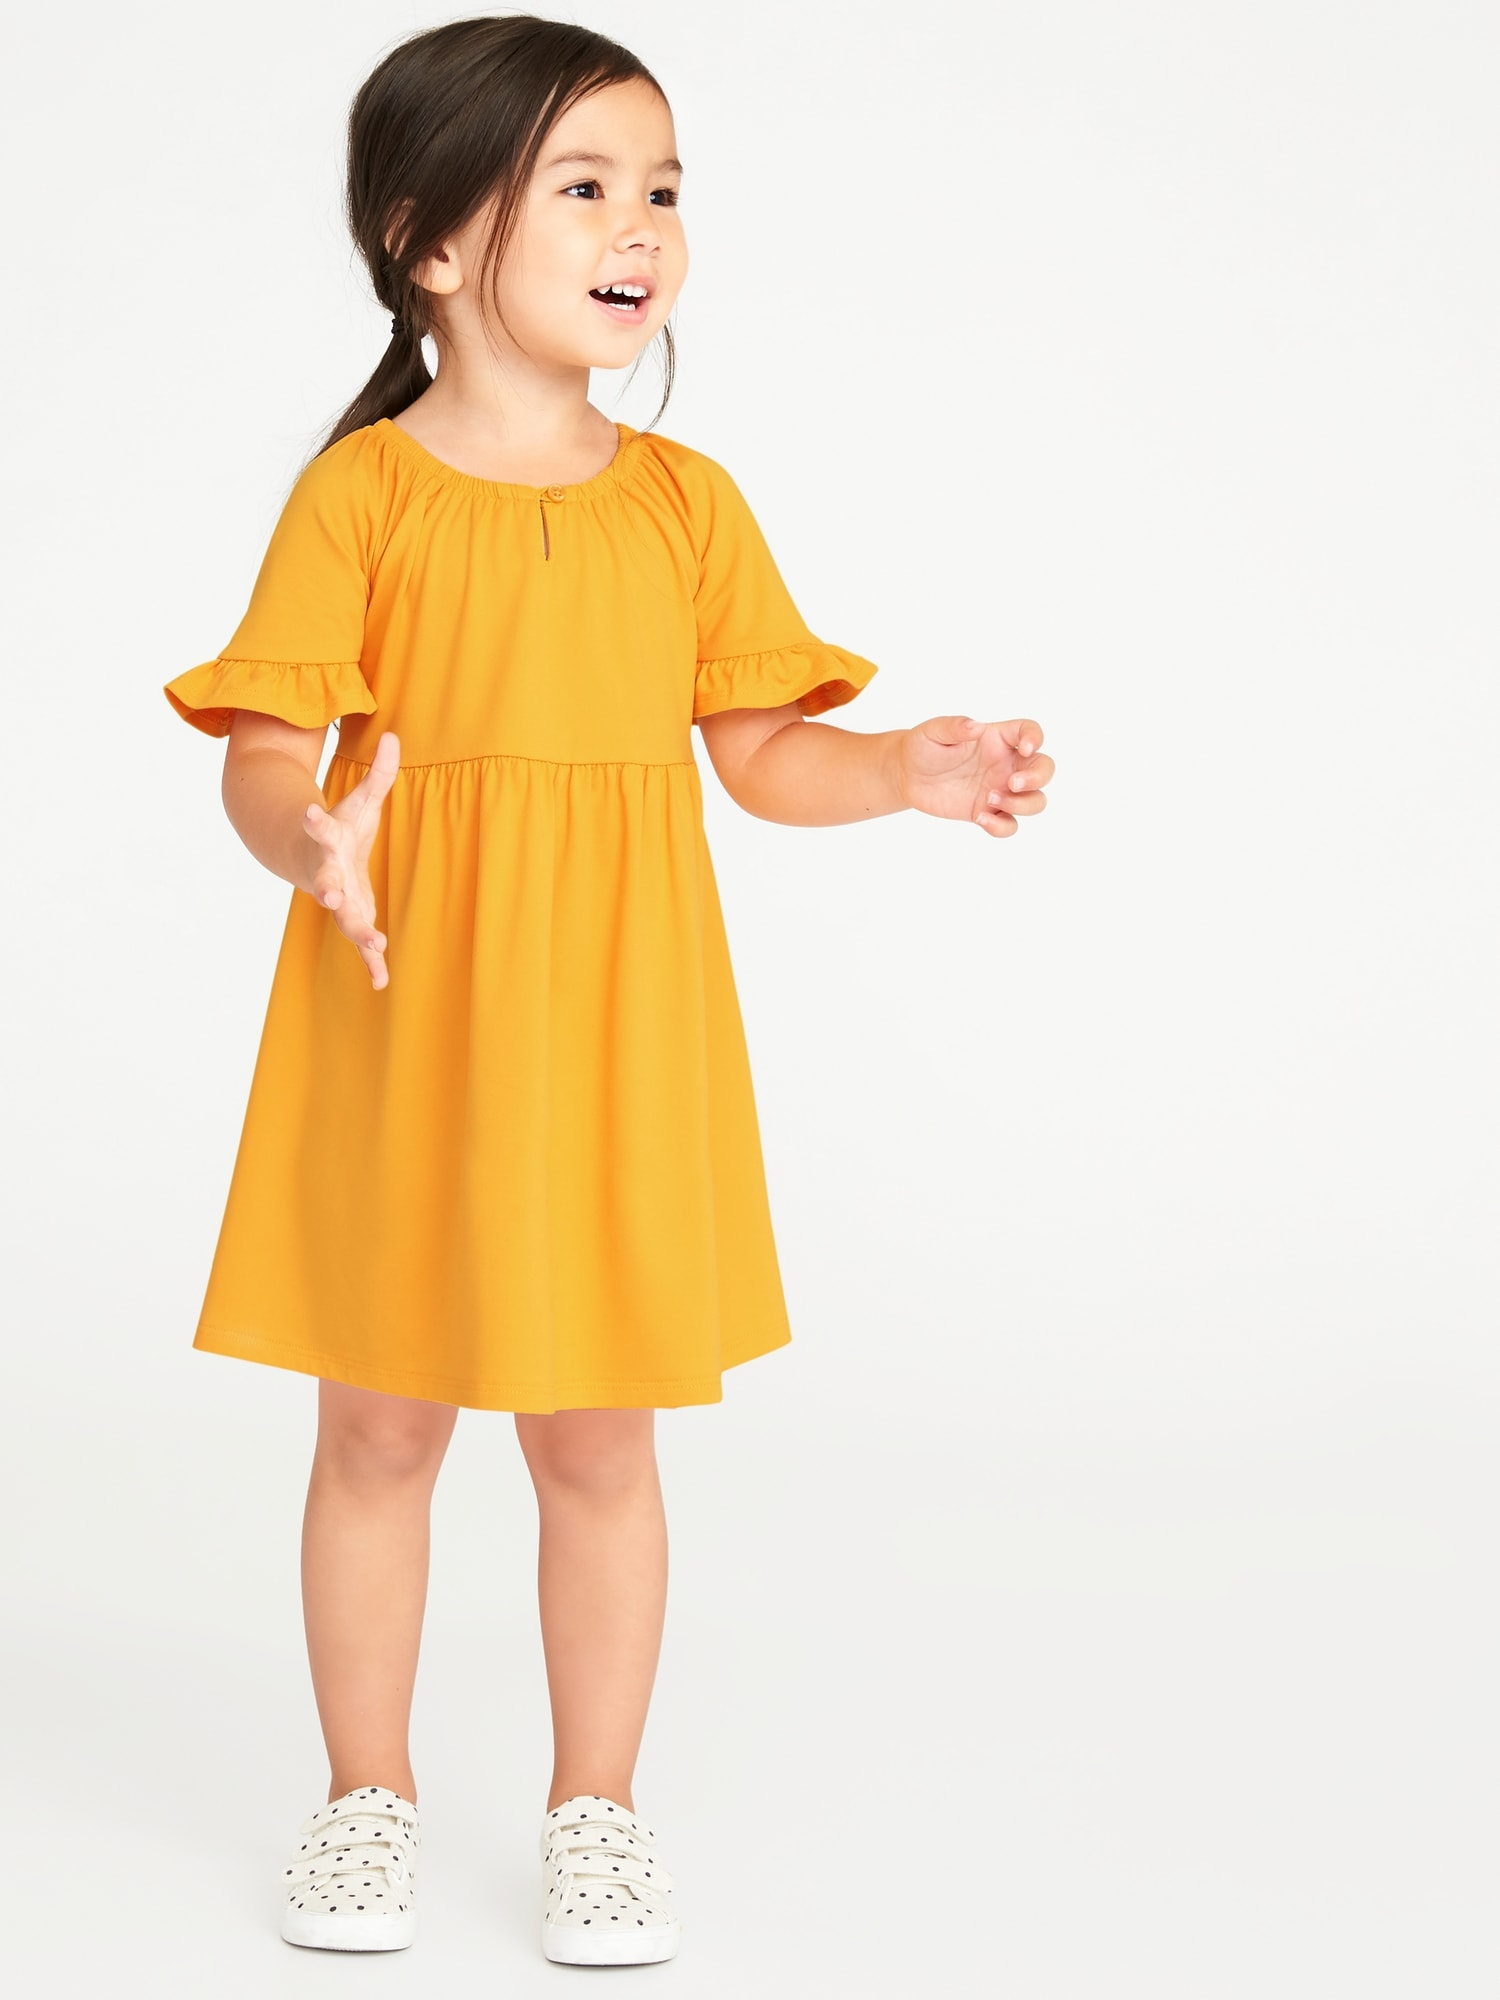 c8b70a50f06de Fit & Flare Jersey Dress for Toddler Girls | Old Navy